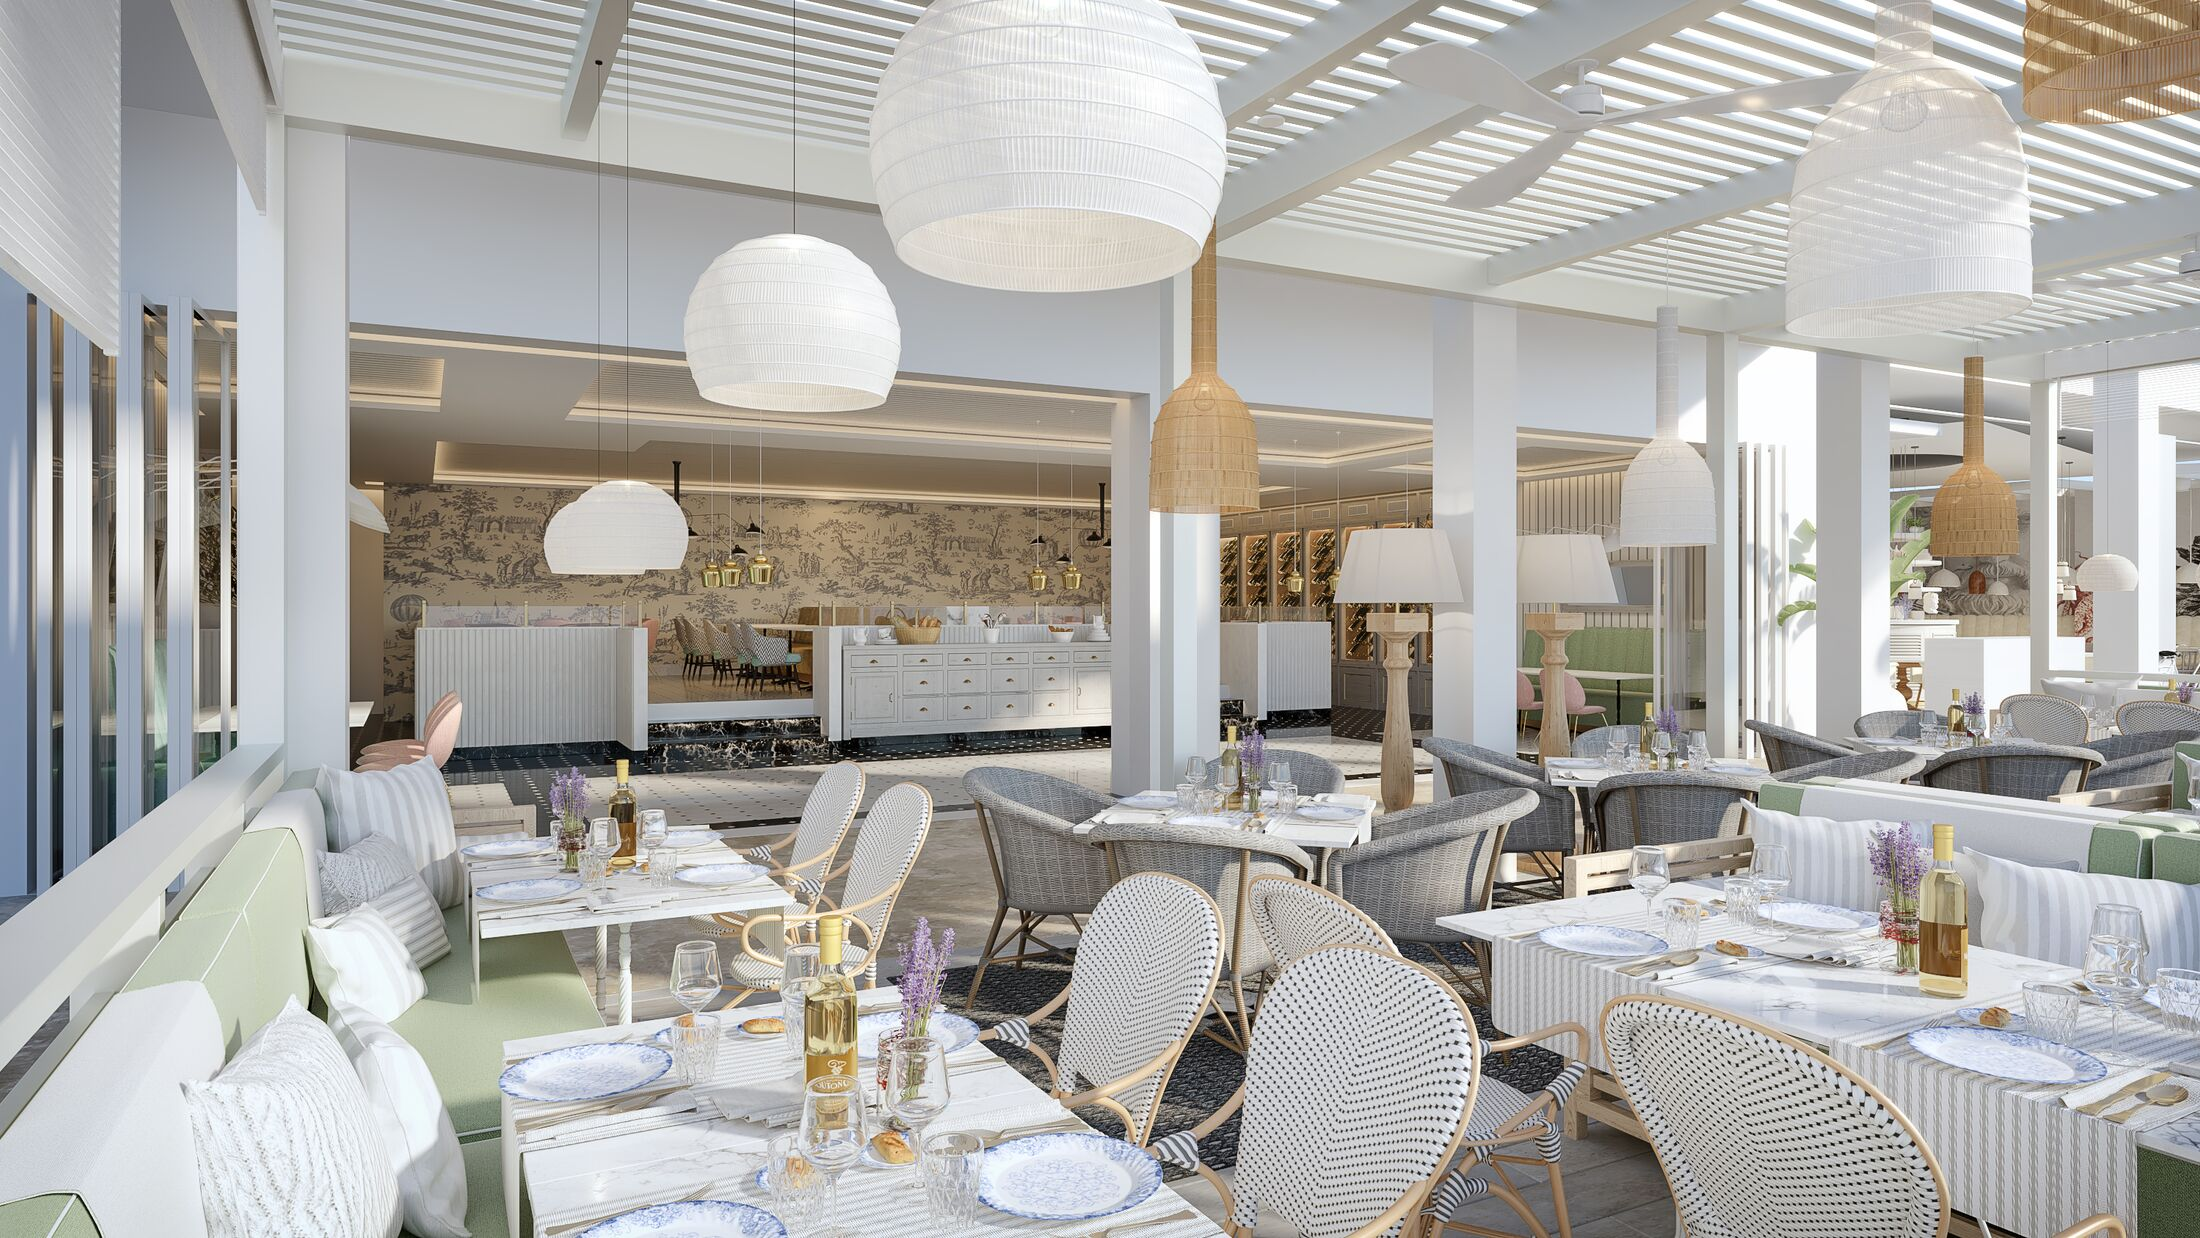 Ikos-Andalusia-Provence-Restaurant-121616-Hybris